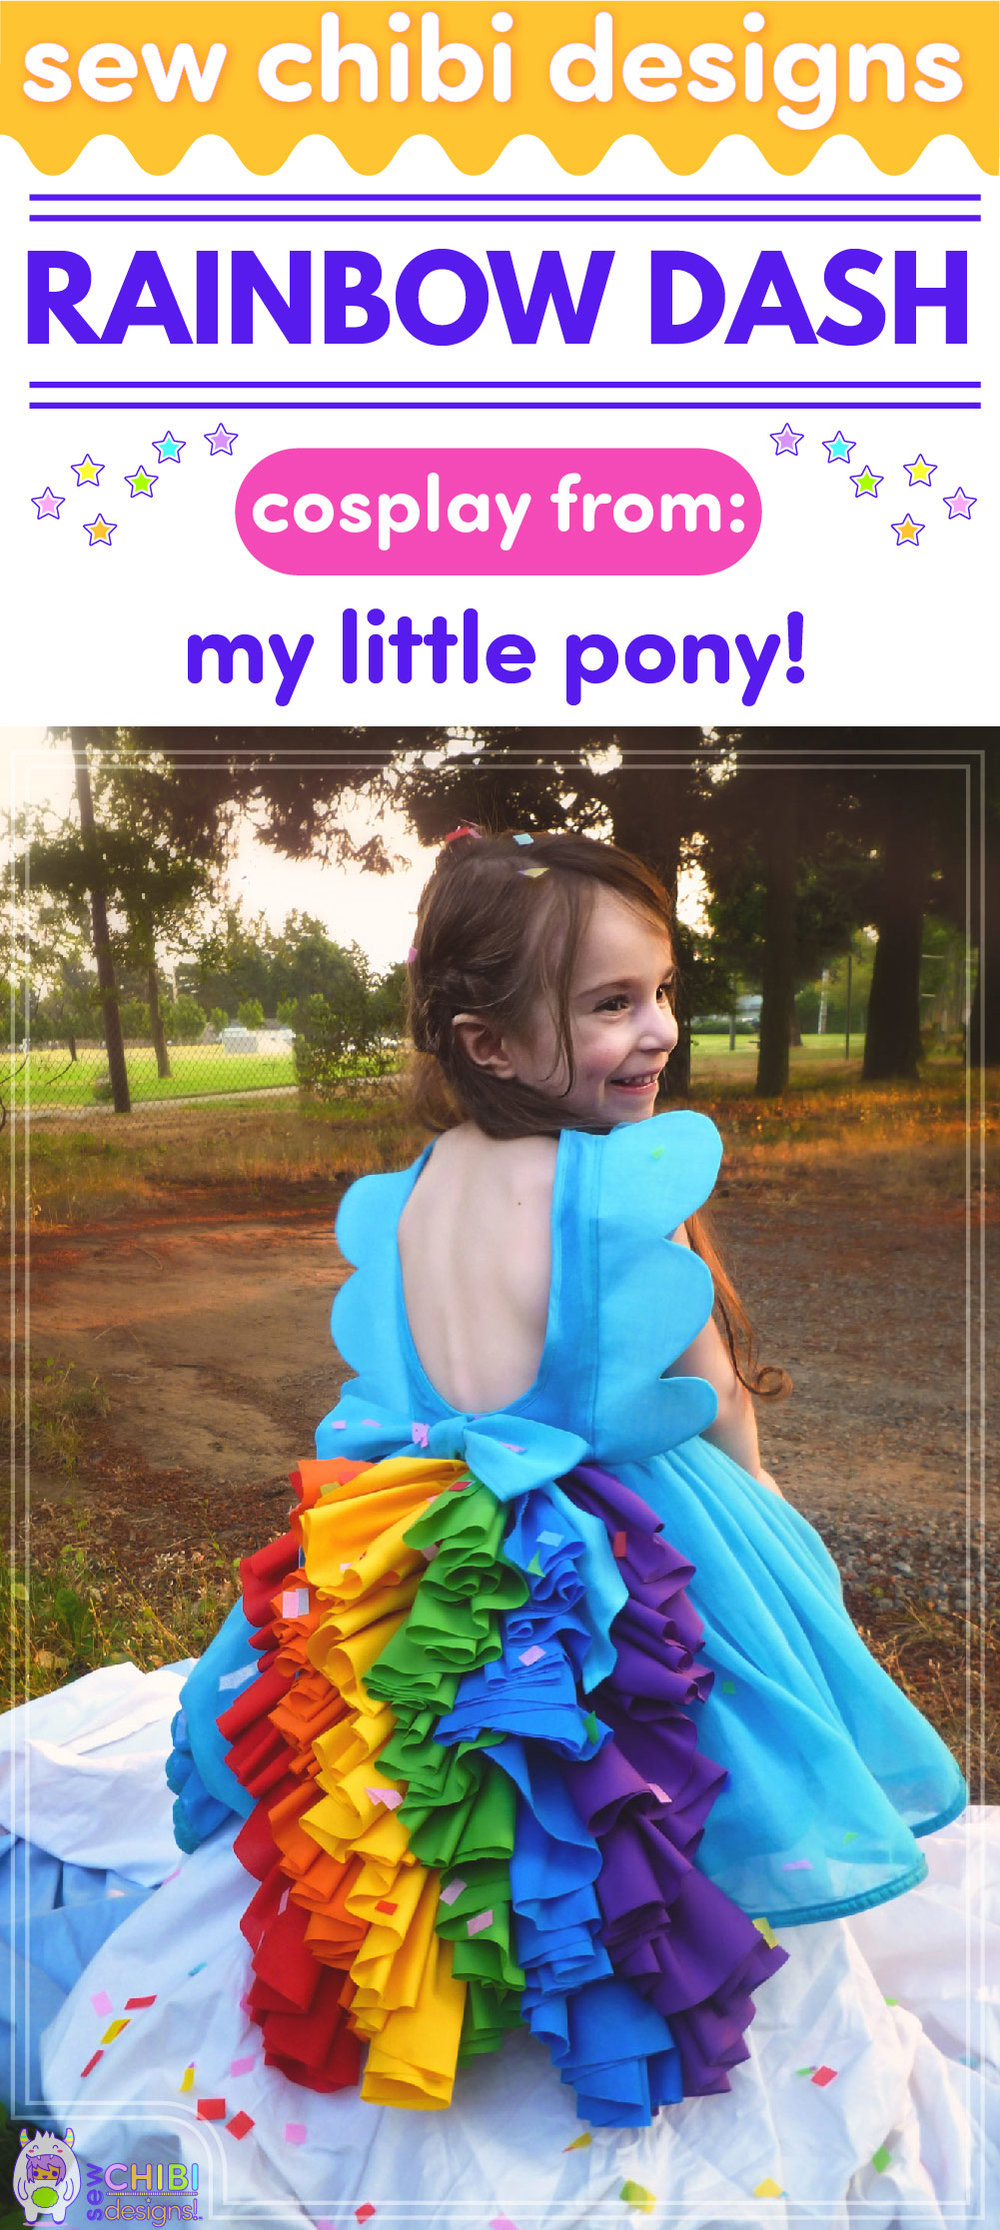 Rainbow Dash chibi cosplay from My Little Pony sewn by Sew Chibi Designs for Sew Geeky